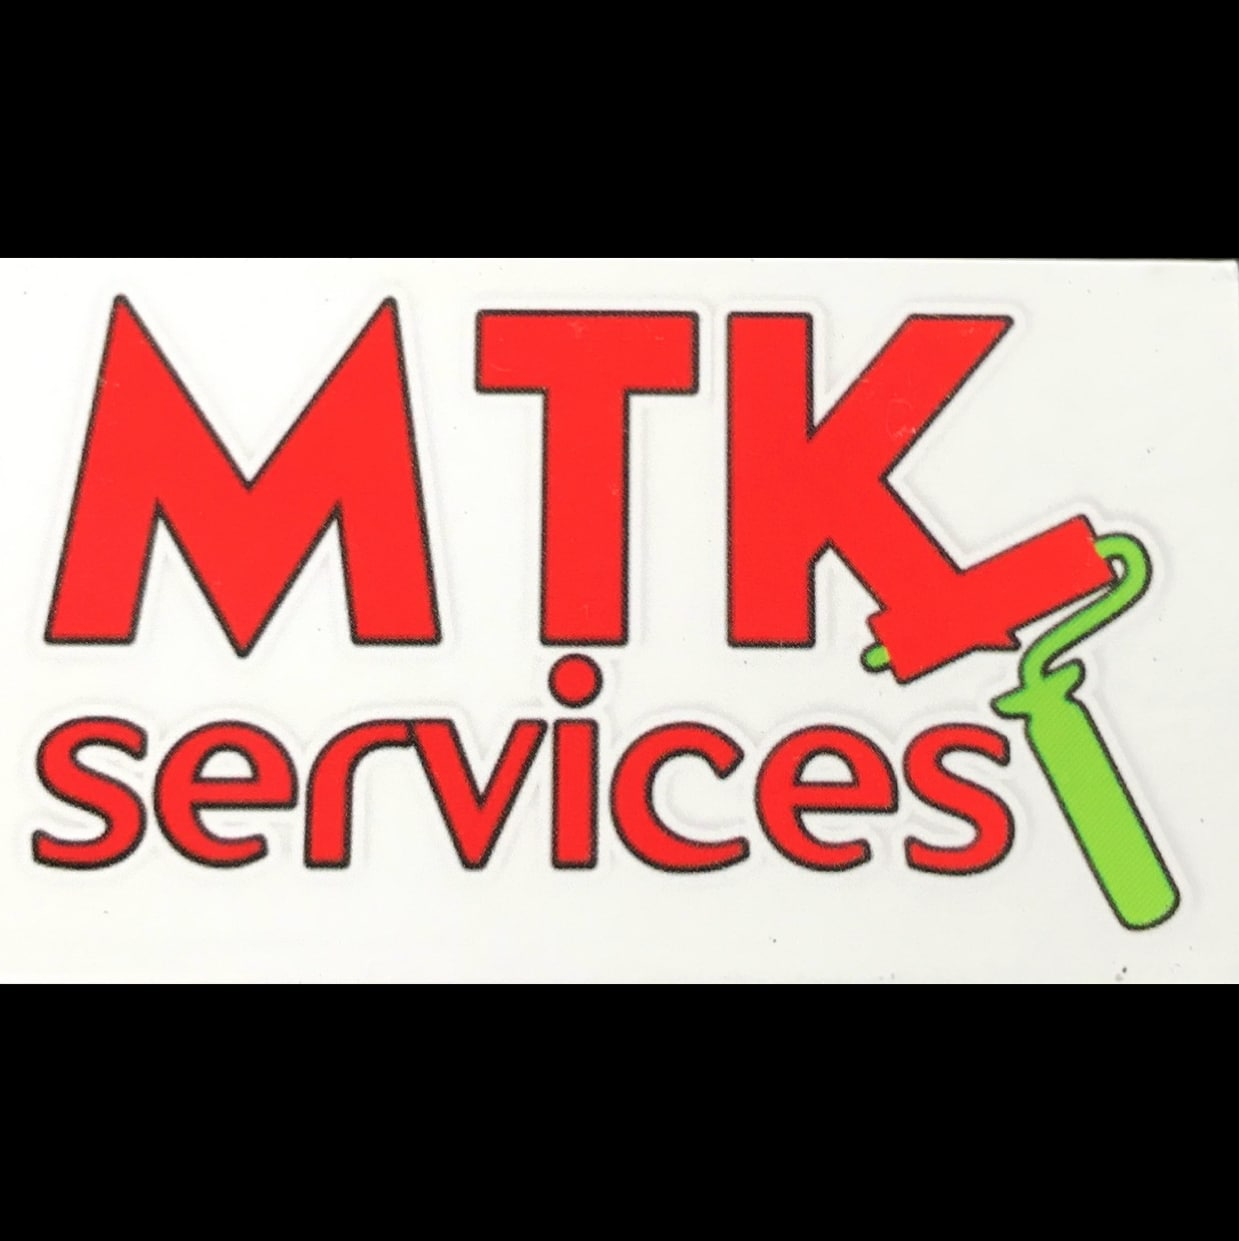 Mtk Services Corp